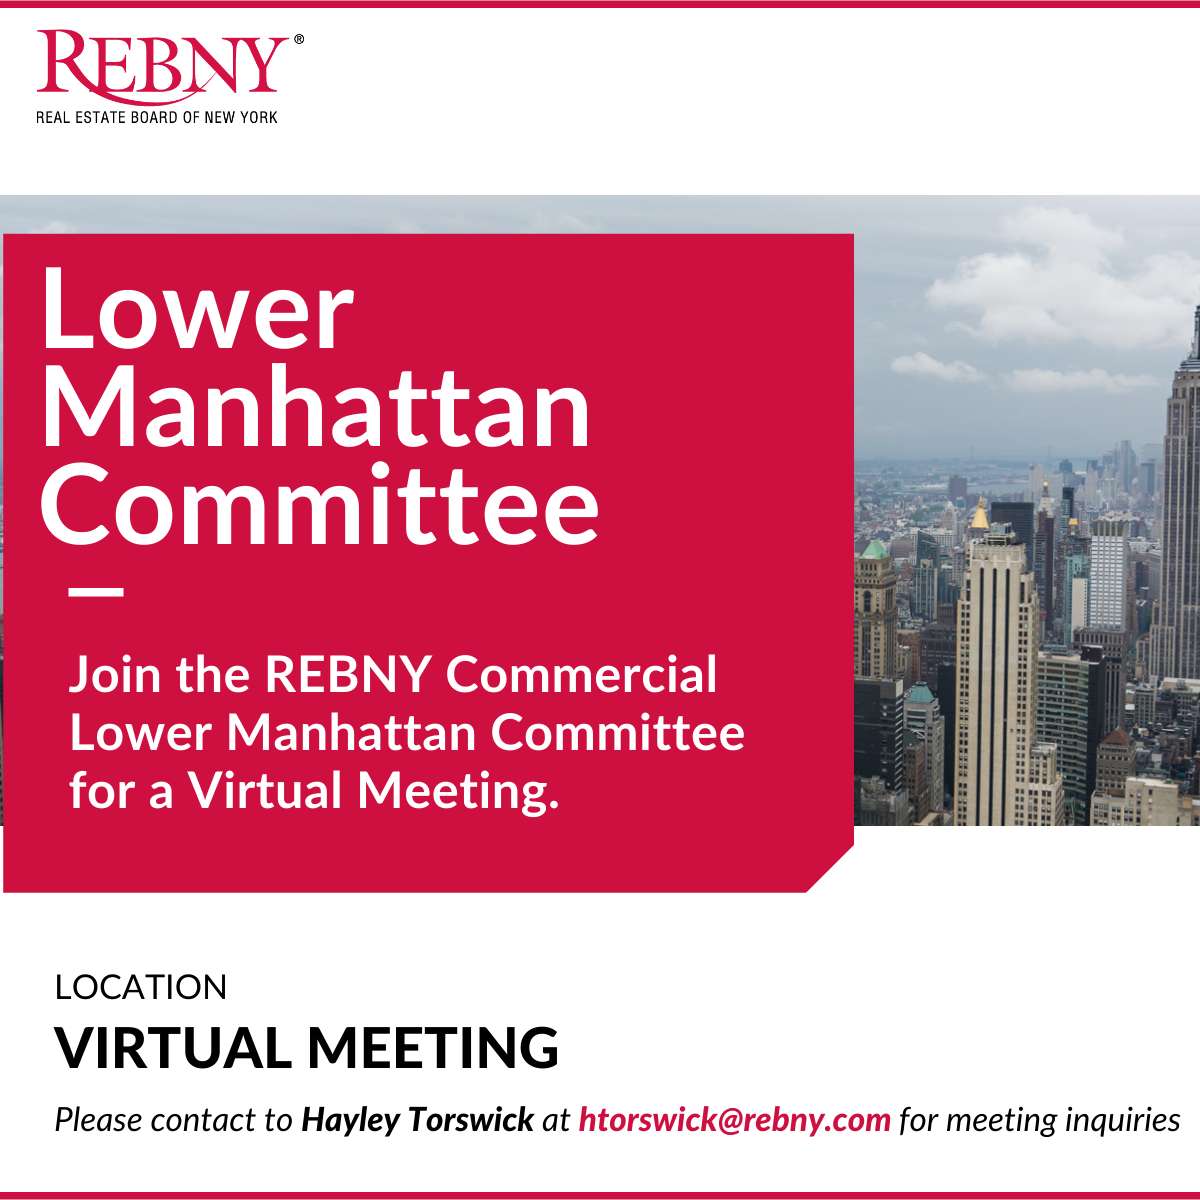 VIRTUAL: Commercial Brokerage Lower Manhattan Committee Meeting